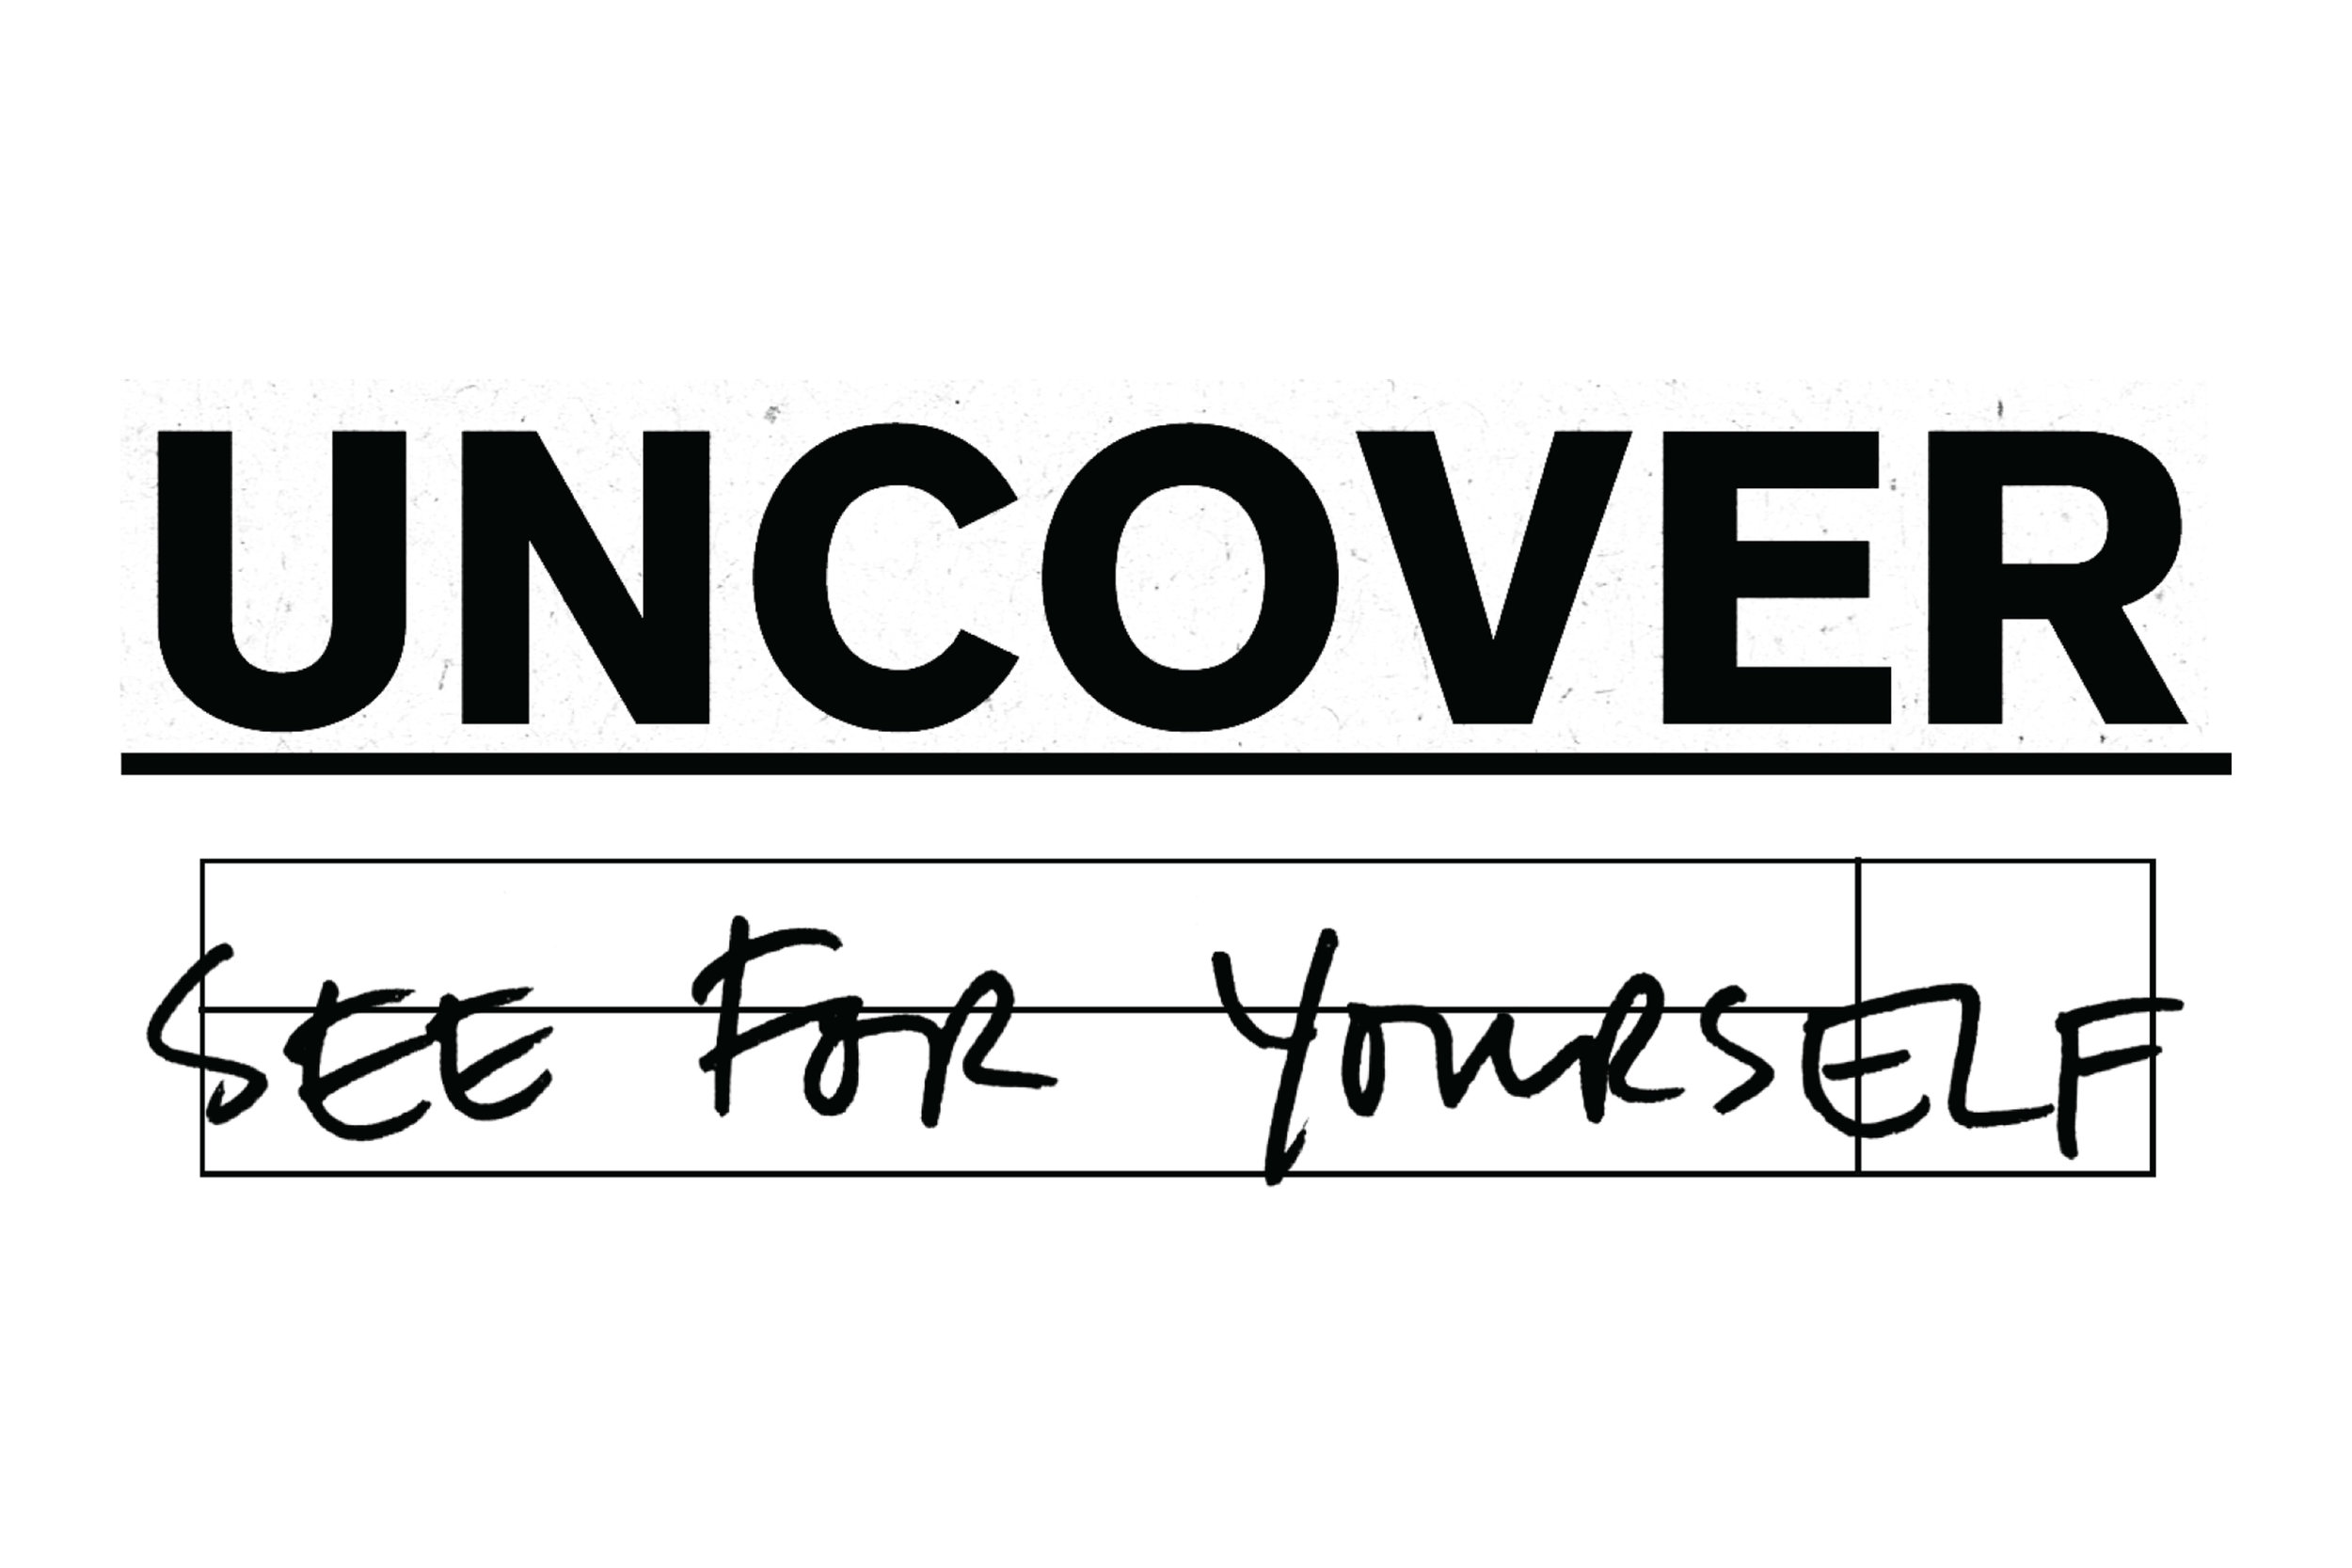 Uncover.jpg